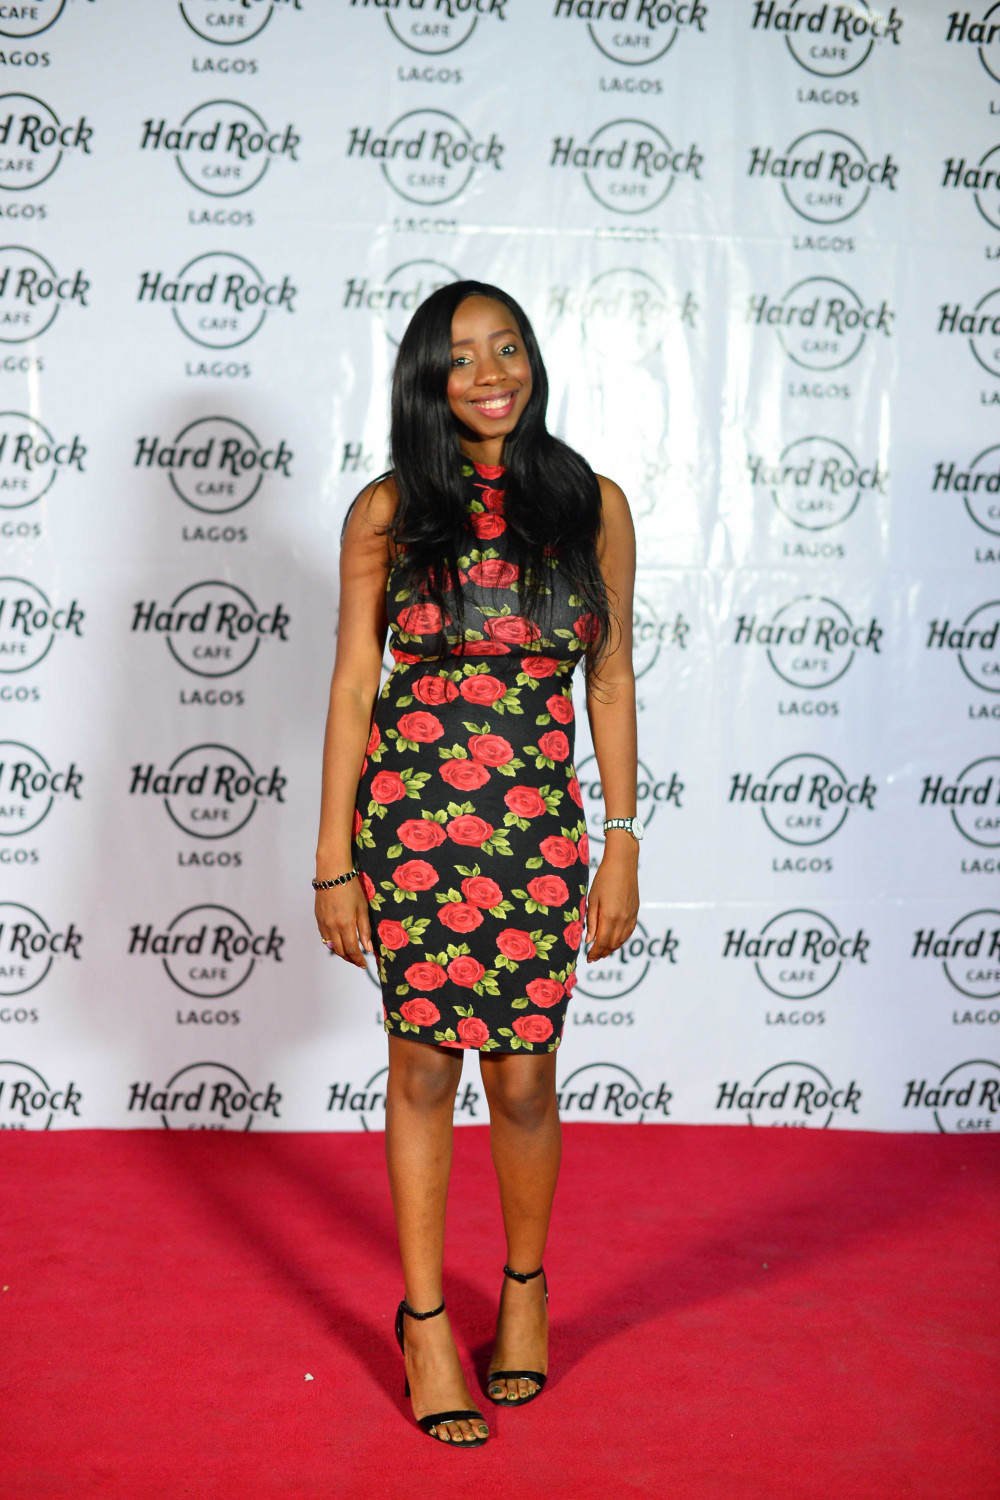 Hard Rock Cafe Lagos Launch BellaNaija DSC_0522